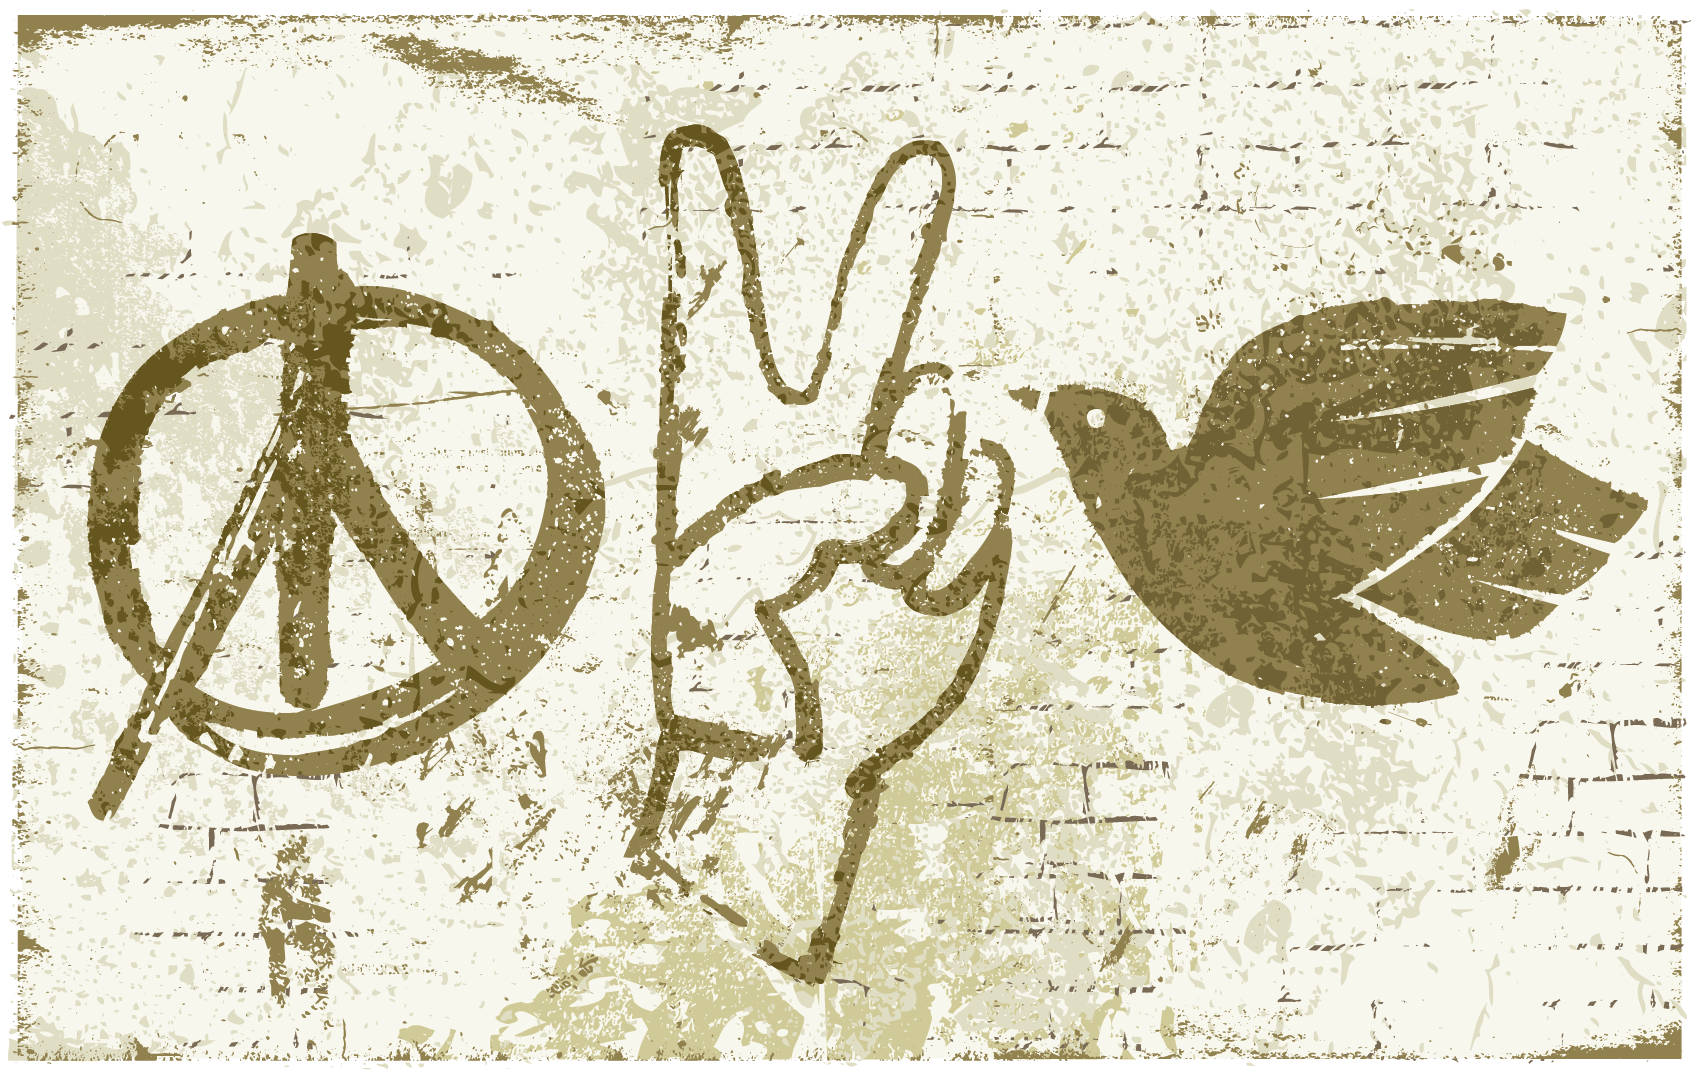 Illustration of a brick wall featuring graffiti of a peace symbol, hand making the peace sign and a dove.